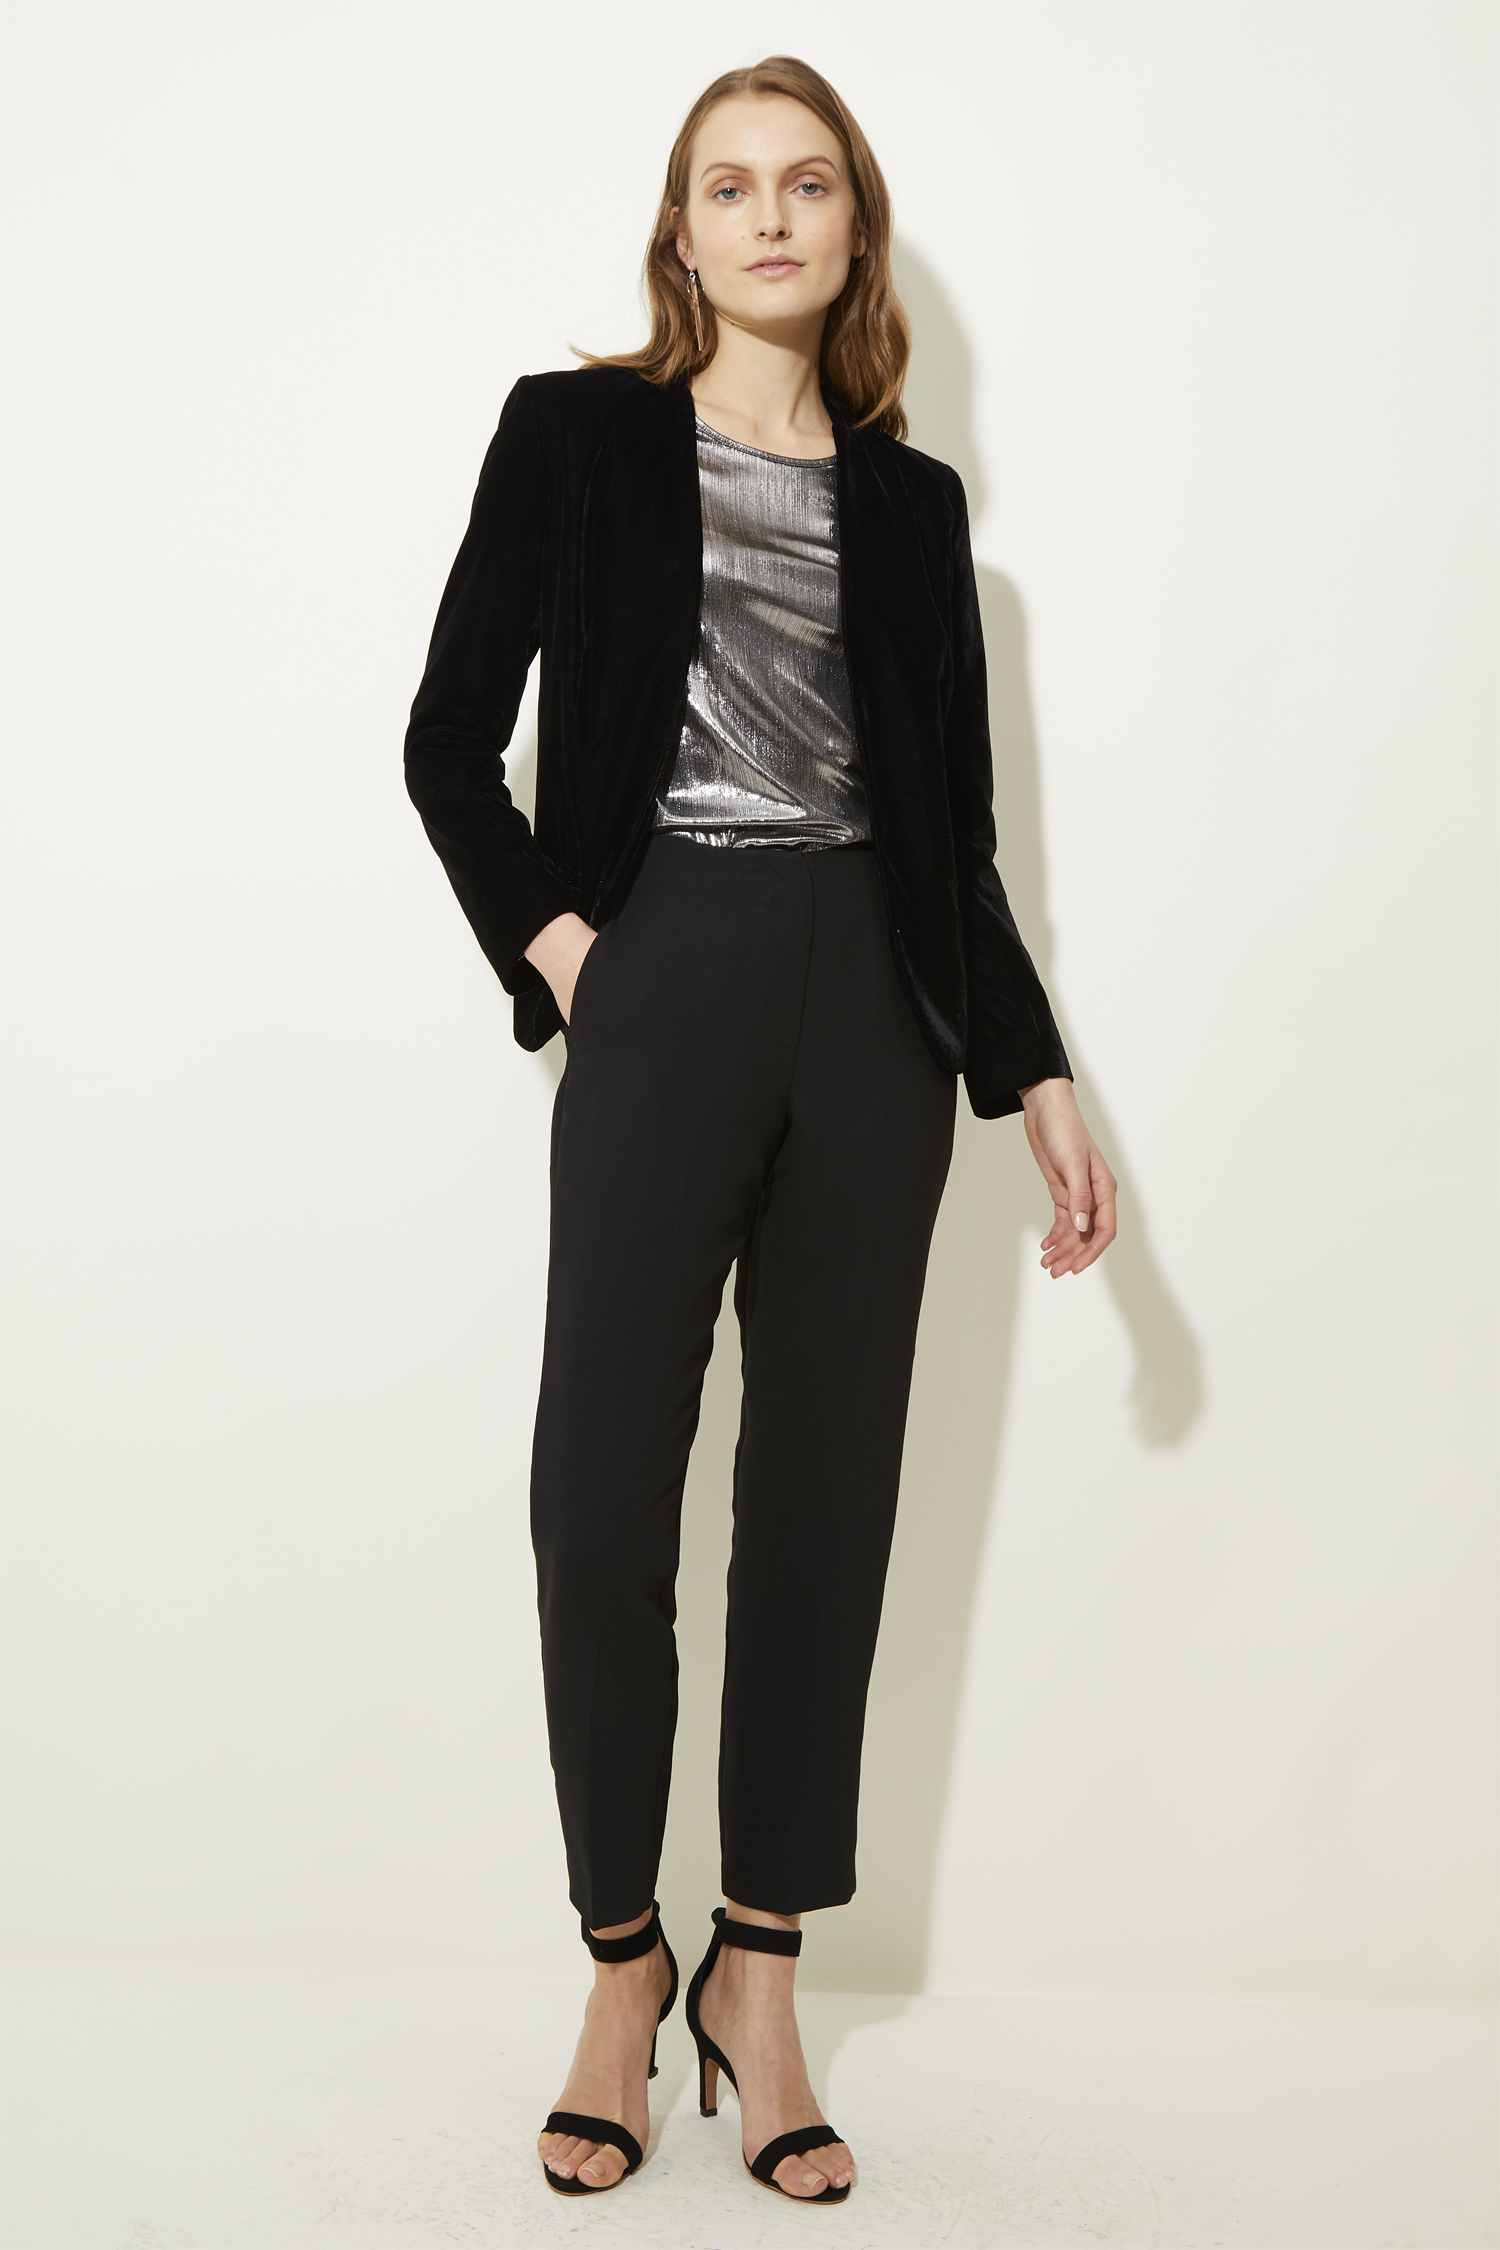 velvet jackets for women